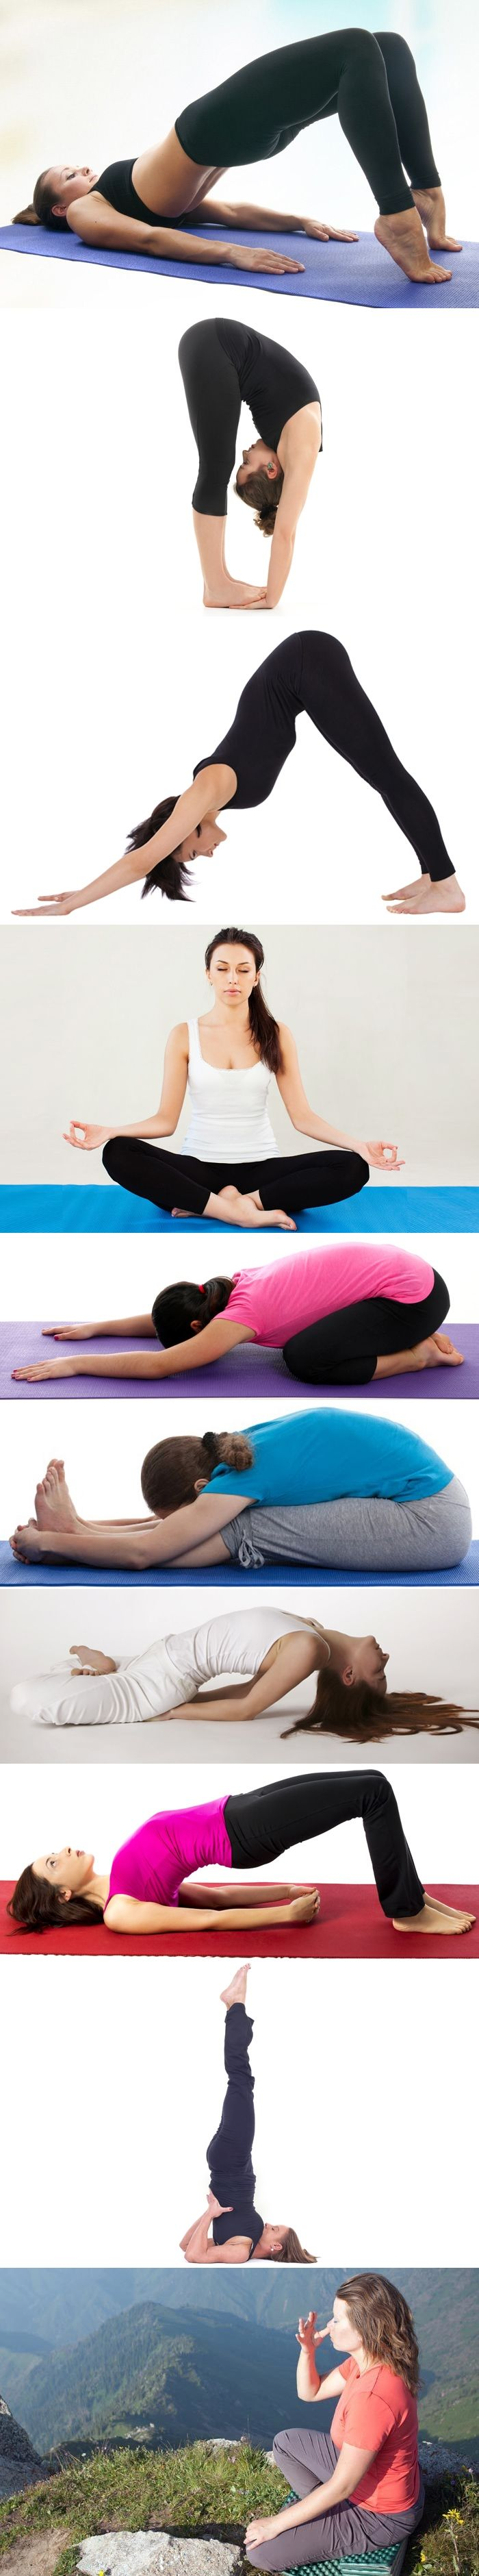 Yoga Therapies  for Combatting Anxiety and Depression